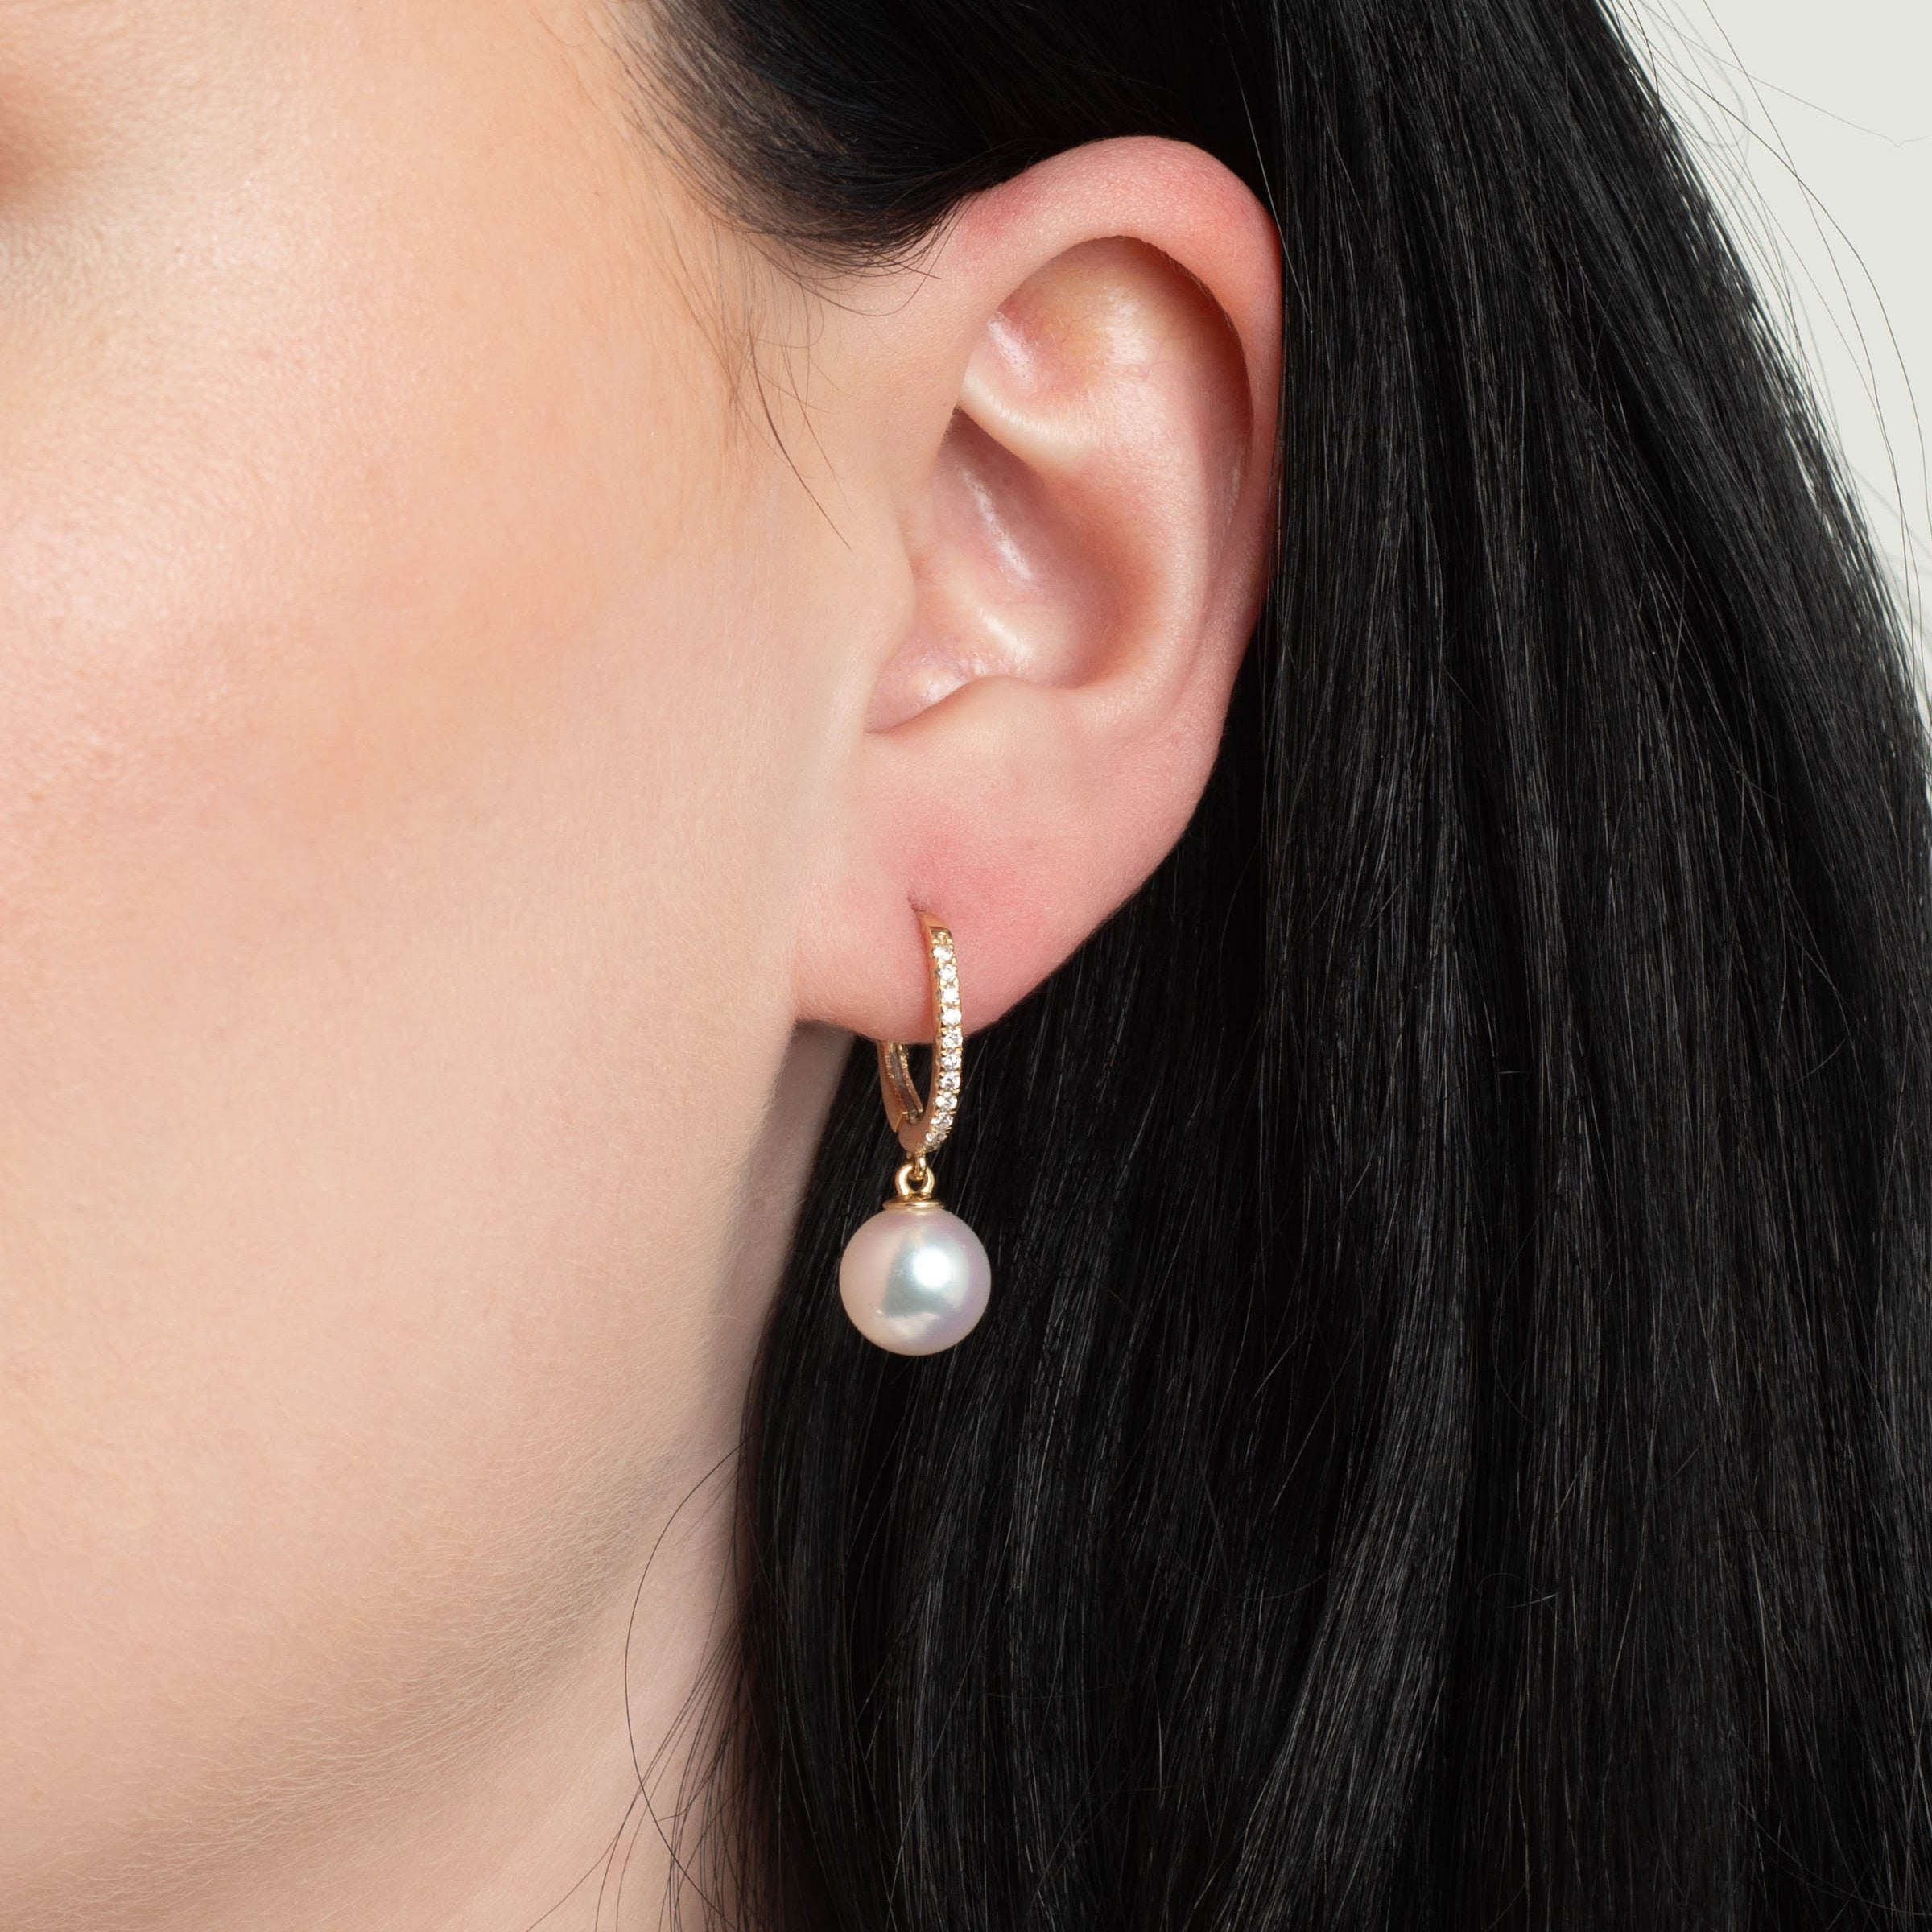 Eternal Collection 9.0-9.5 mm Natural White Hanadama Pearl and Diamond Dangle Earrings